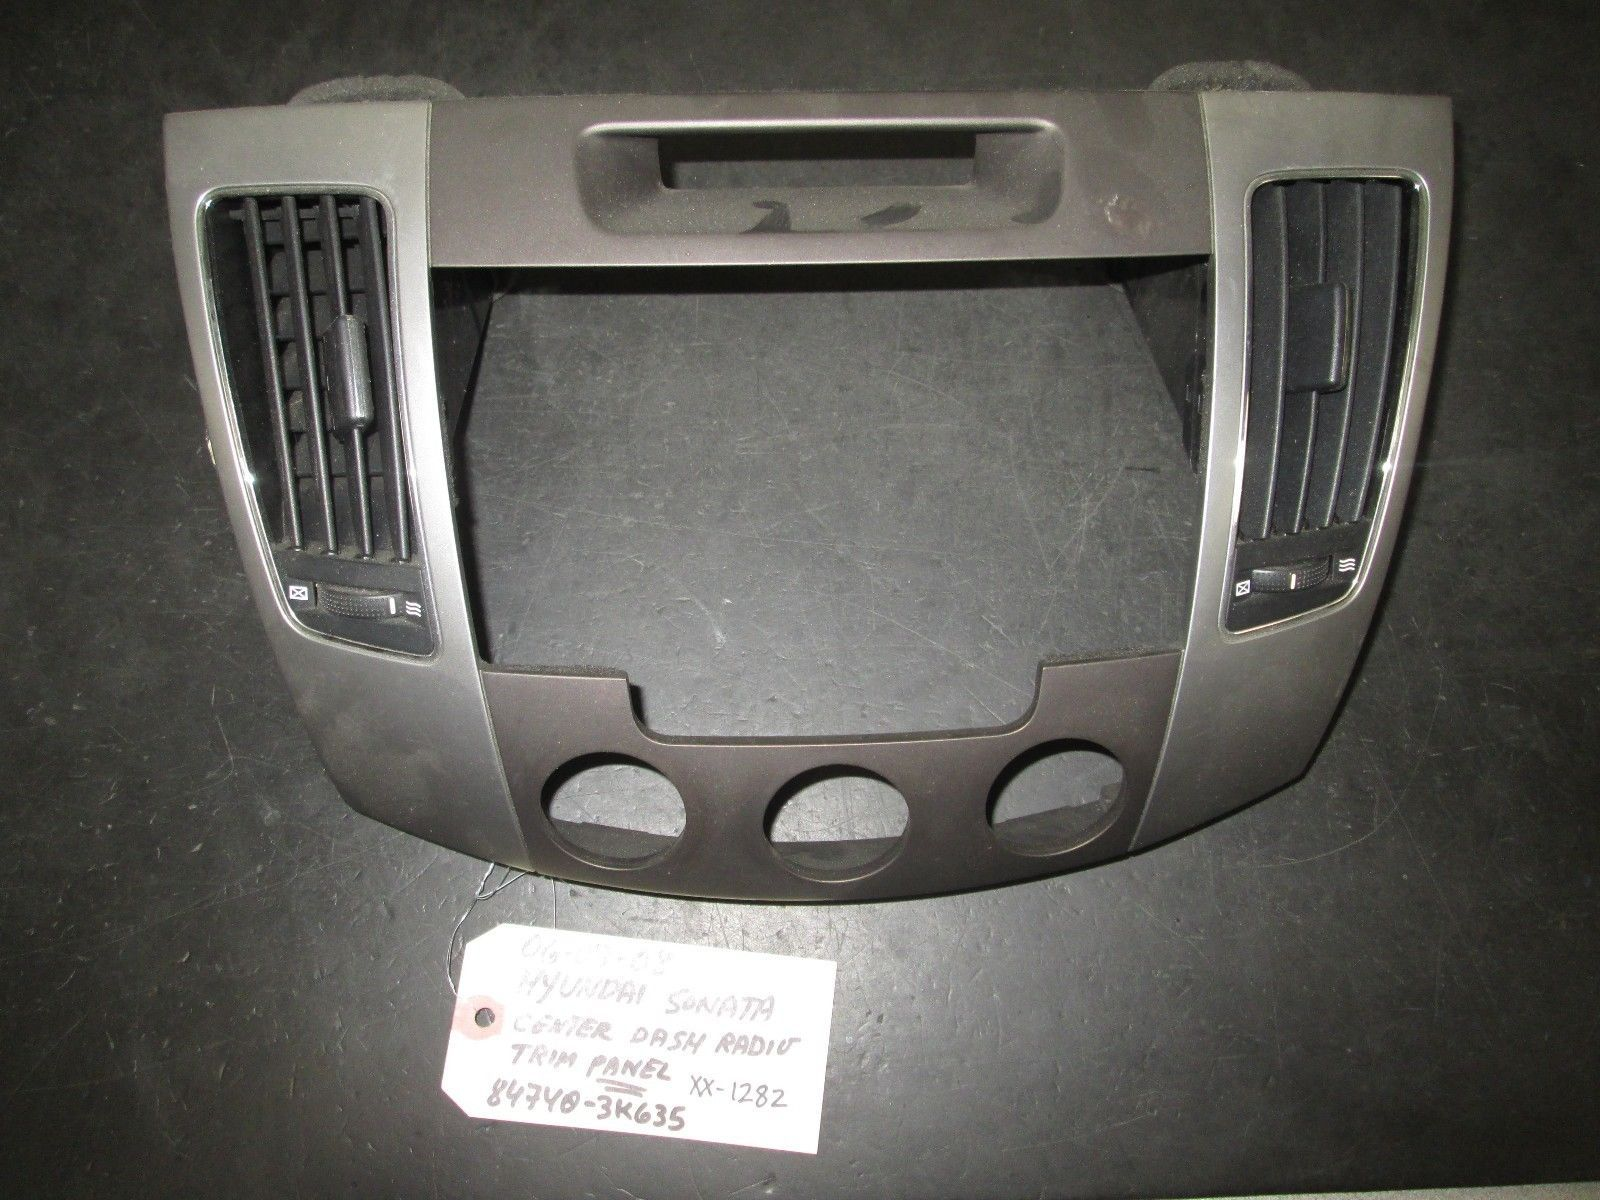 Primary image for 06 07 08 HYUNDAI SONATA CENTER DASH RADIO TRIM PANEL #84740-3K635